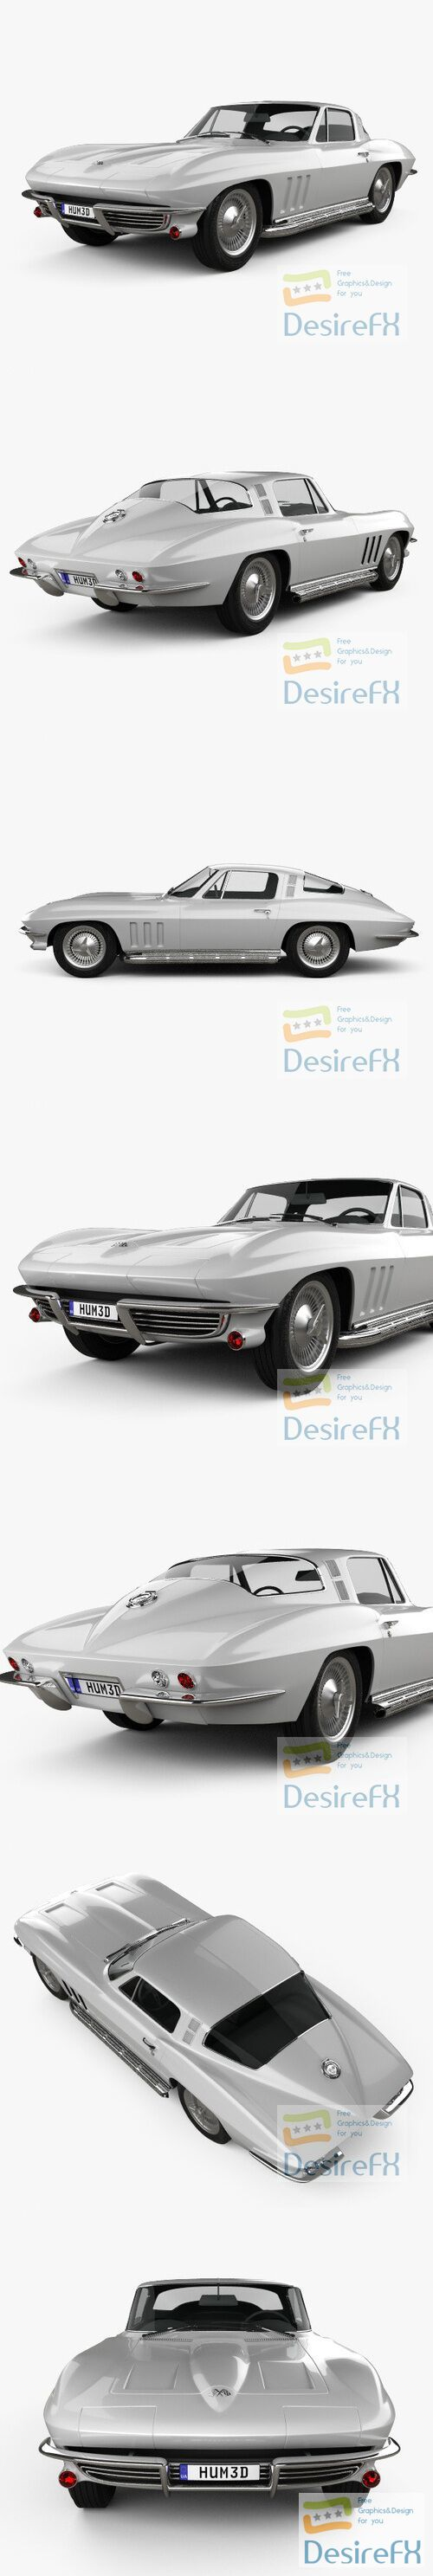 Chevrolet Corvette Sting Ray C2 1965 3D Model